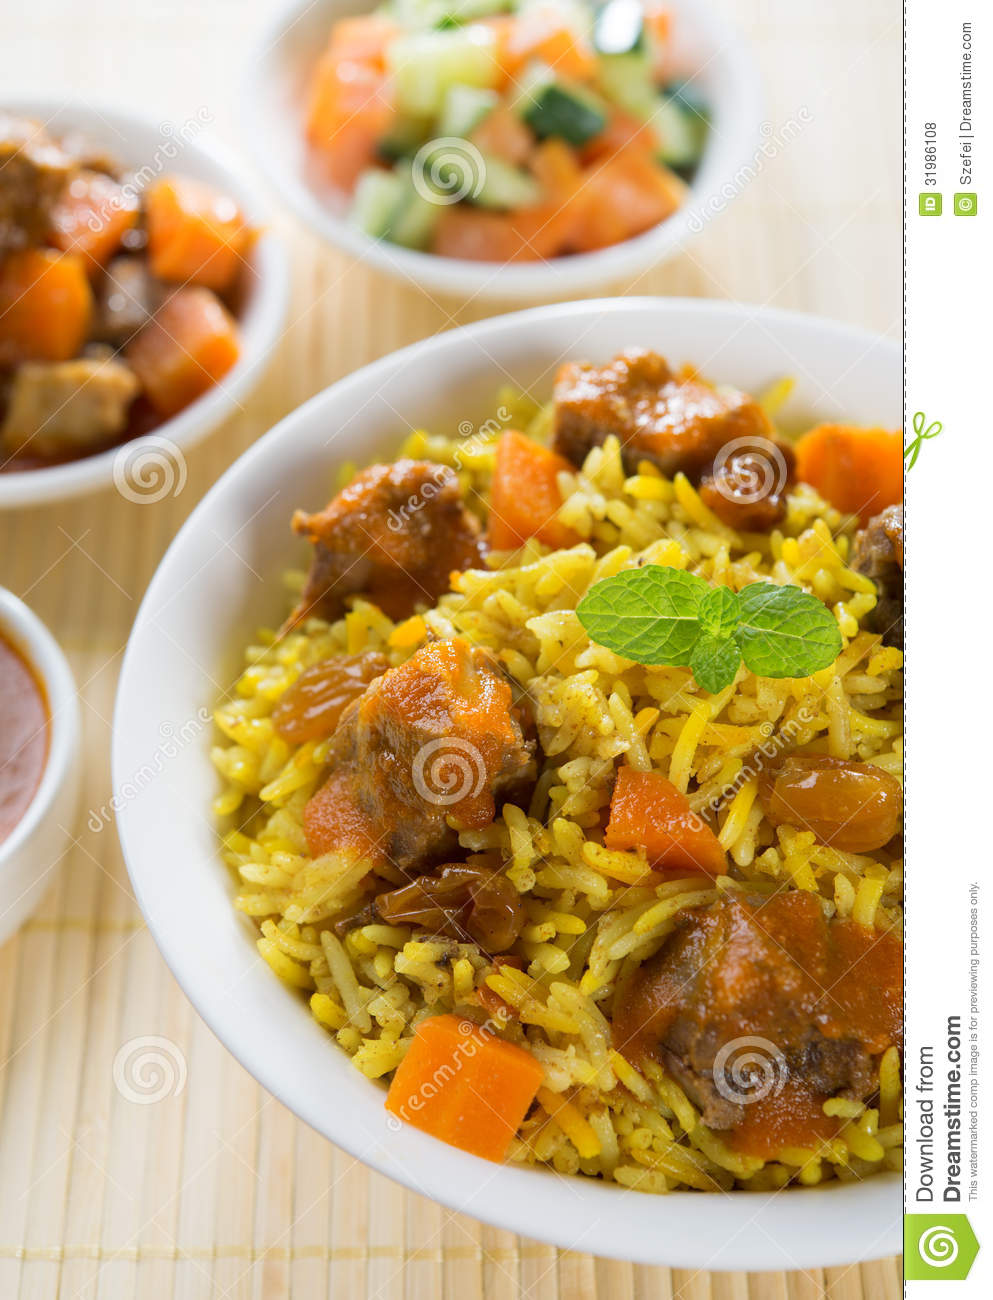 Arabic food stock photo image of mutton carrot dish for Arabic cuisine food